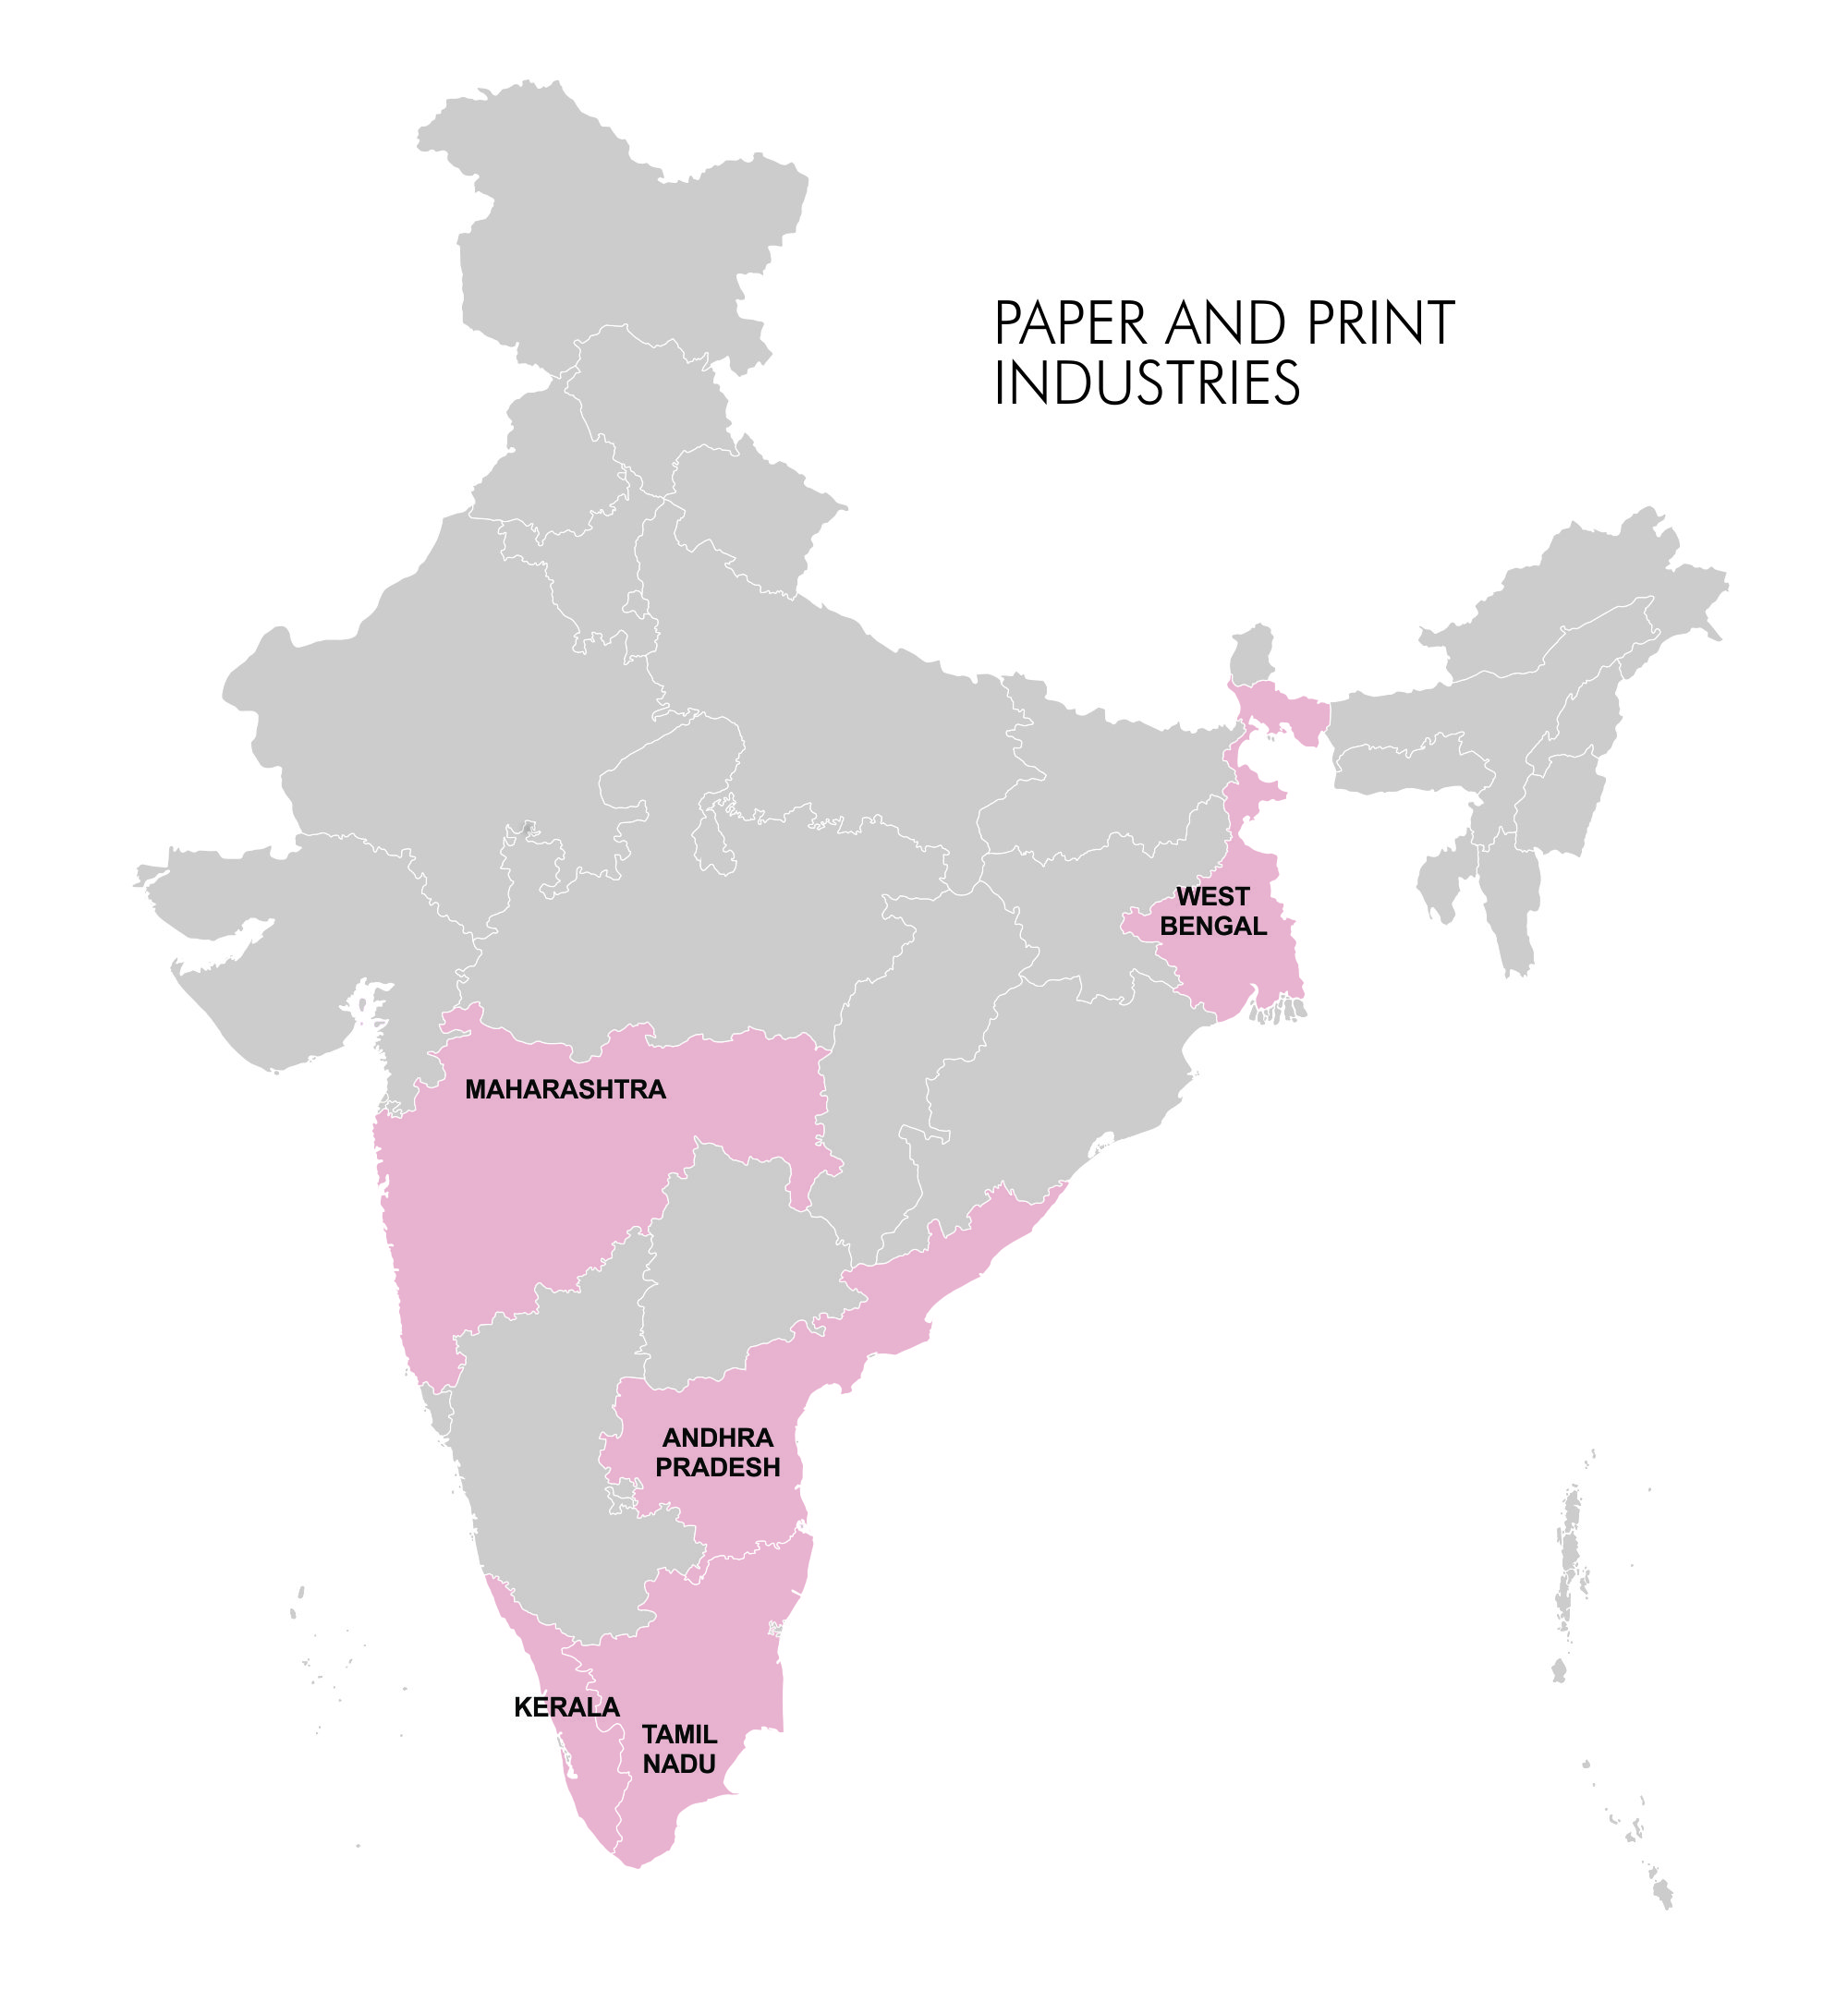 Map- Industry Clusters - Paper and Print